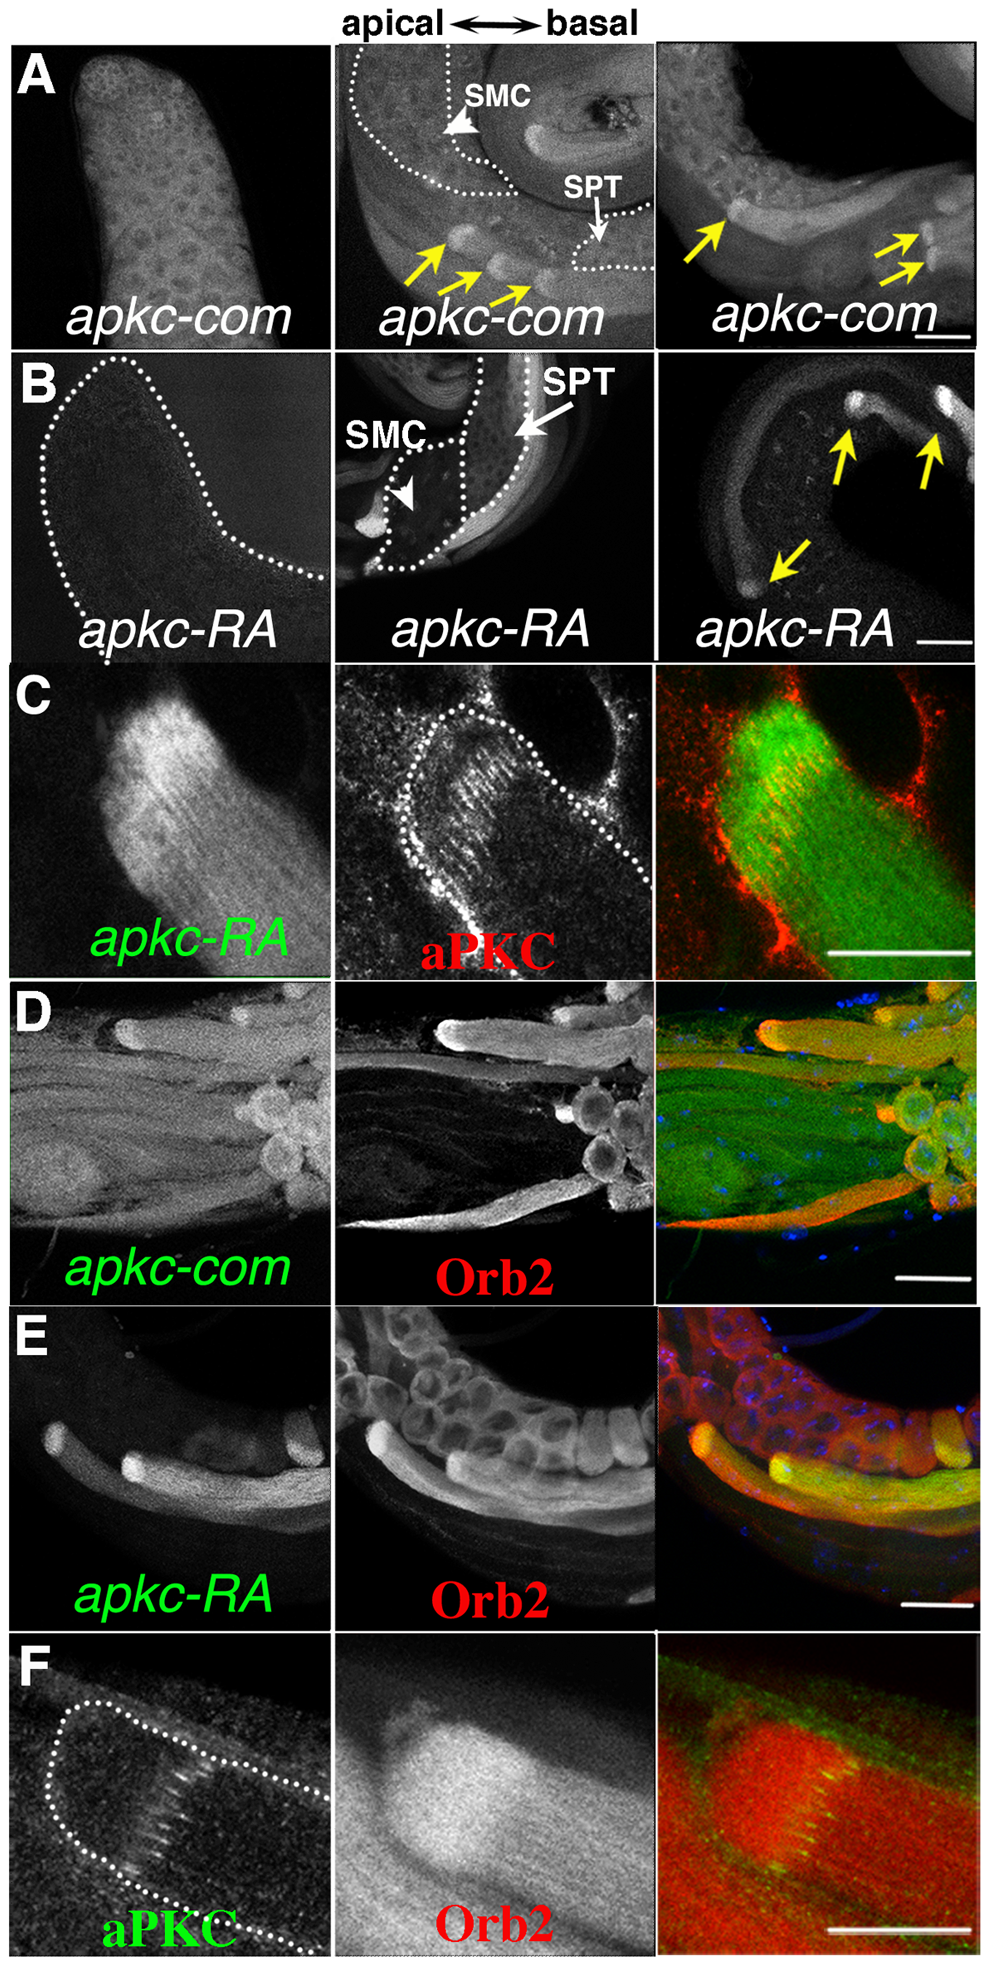 Localized accumulation of <i>apkc</i> mRNA, aPKC and Orb2 protein.